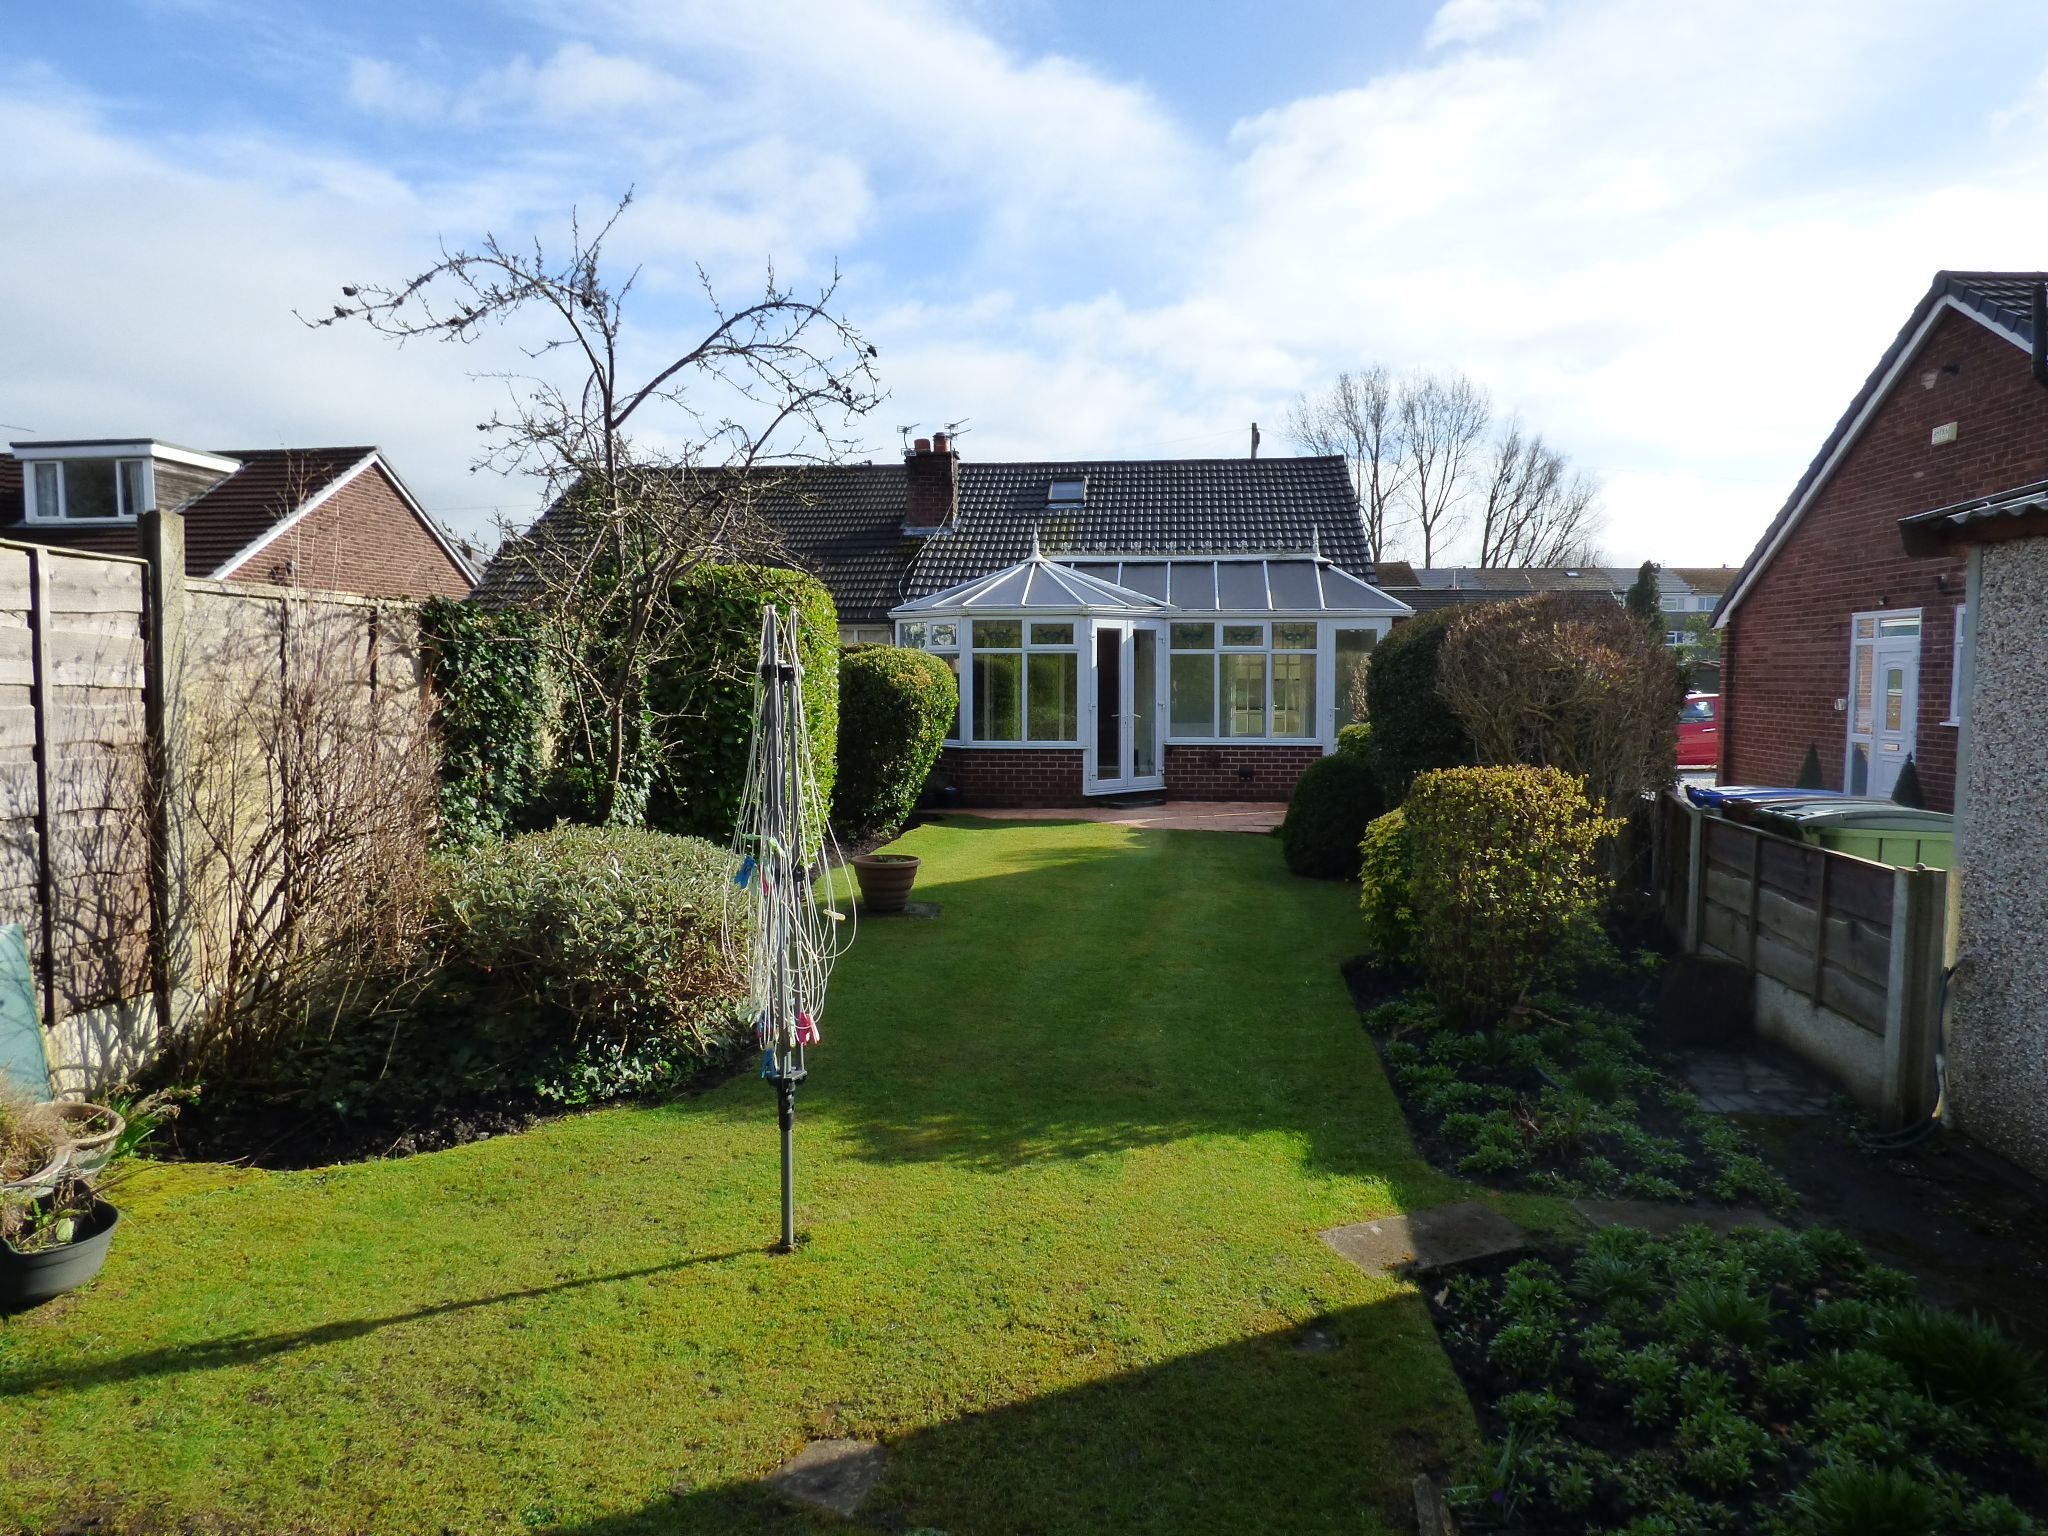 3 Bedroom Semi-detached Bungalow For Sale - Photograph 14